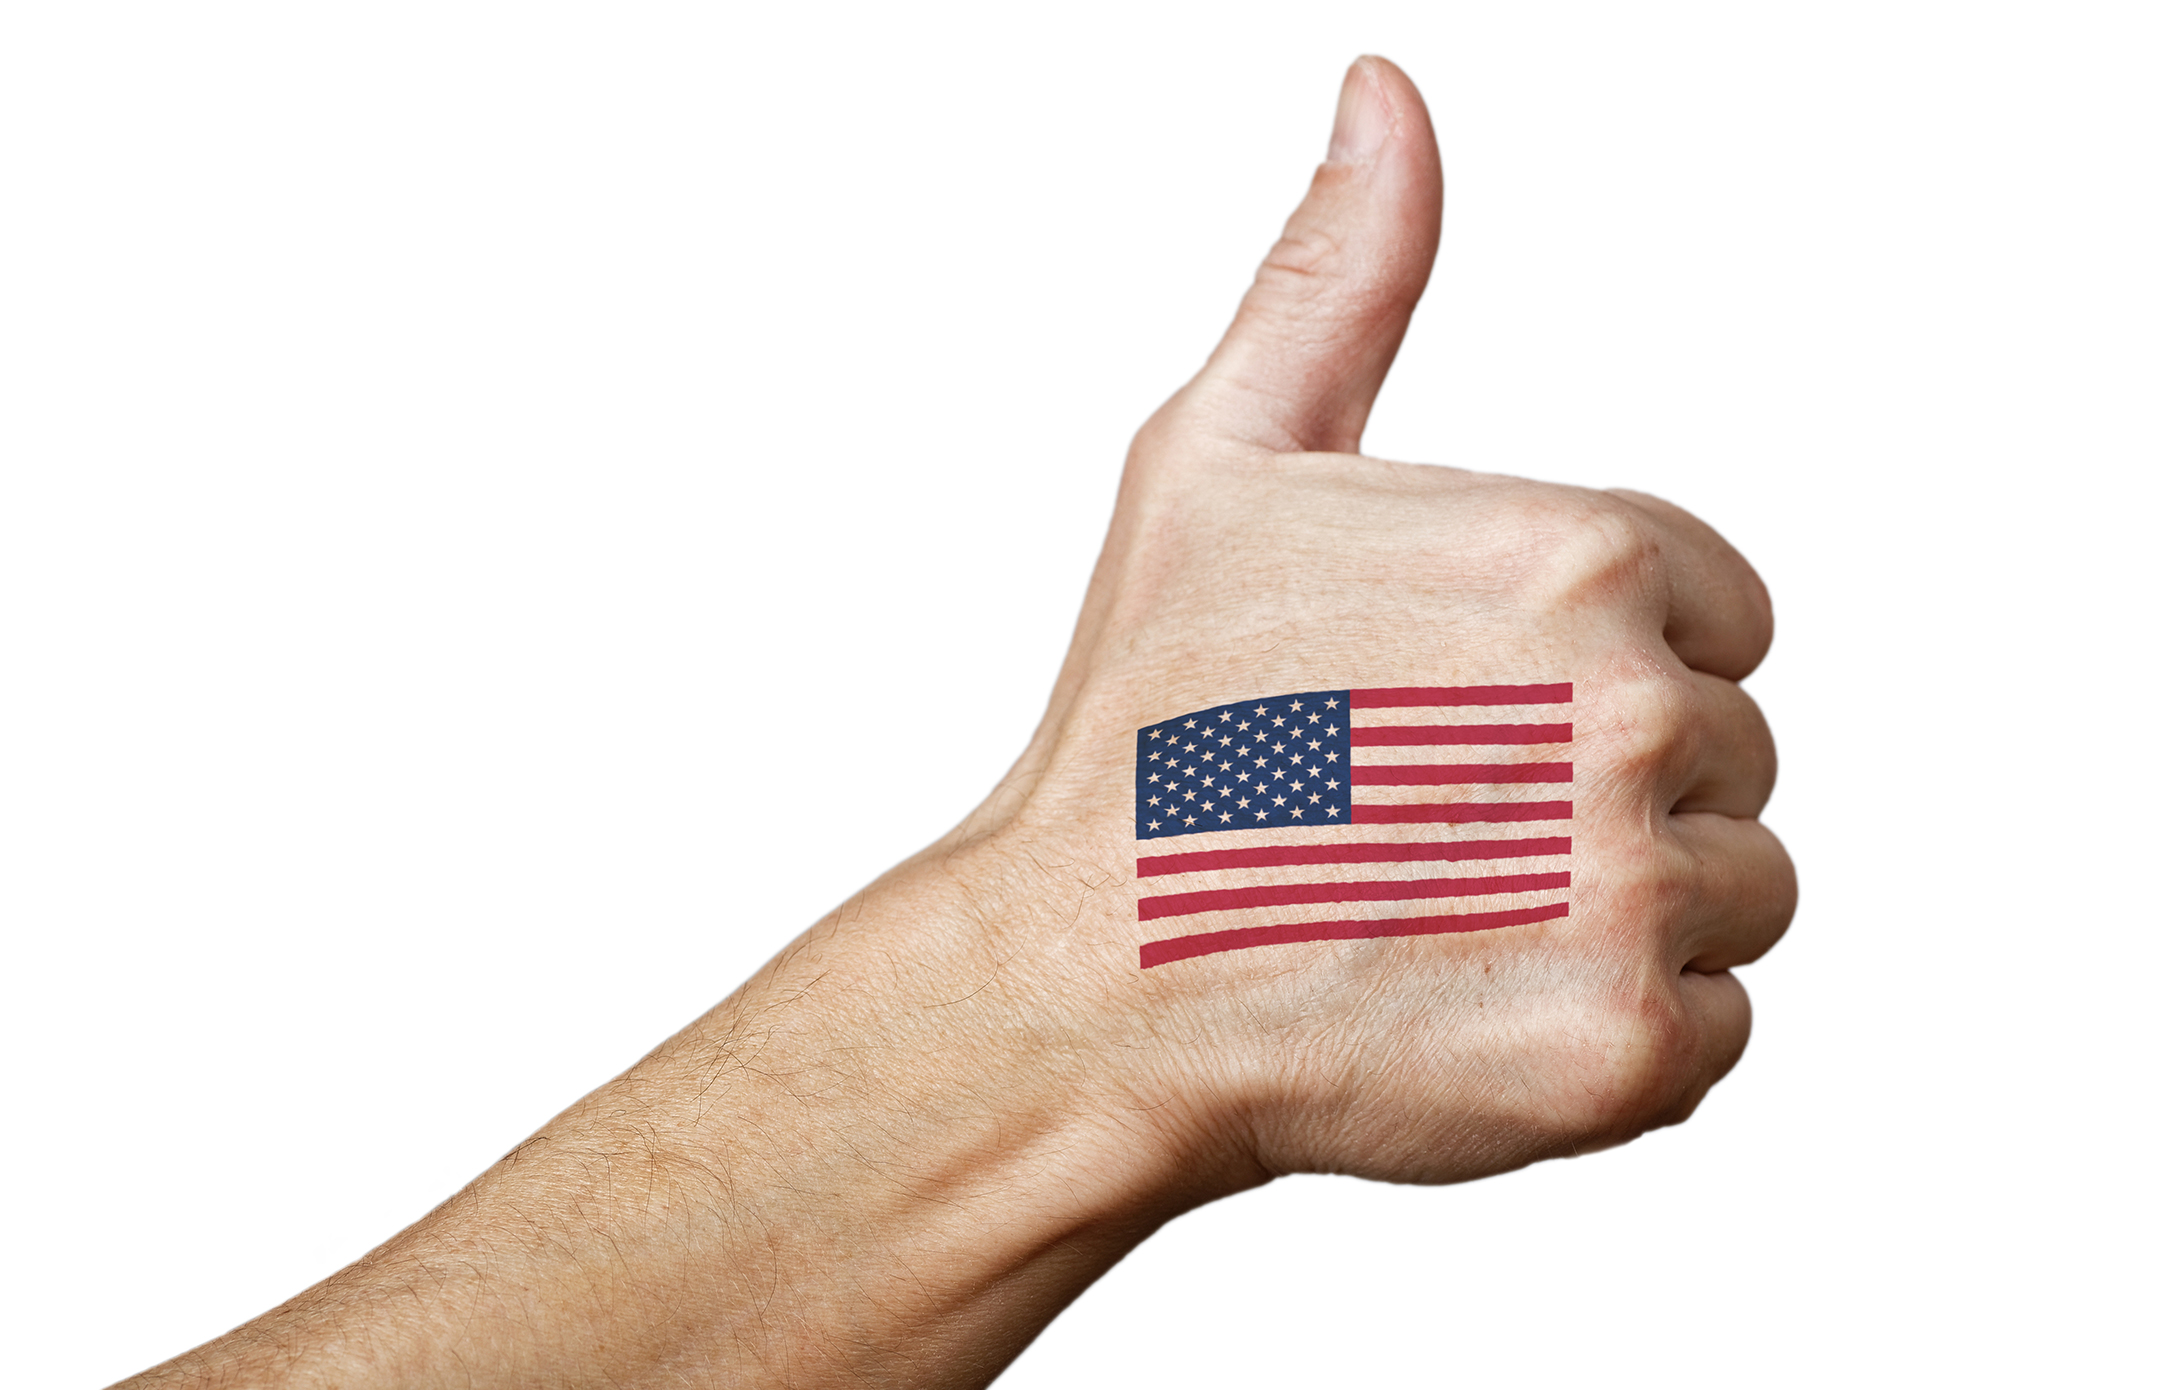 white person's hand giving a thumbs up against a white background with an american flag tattooed on the hand